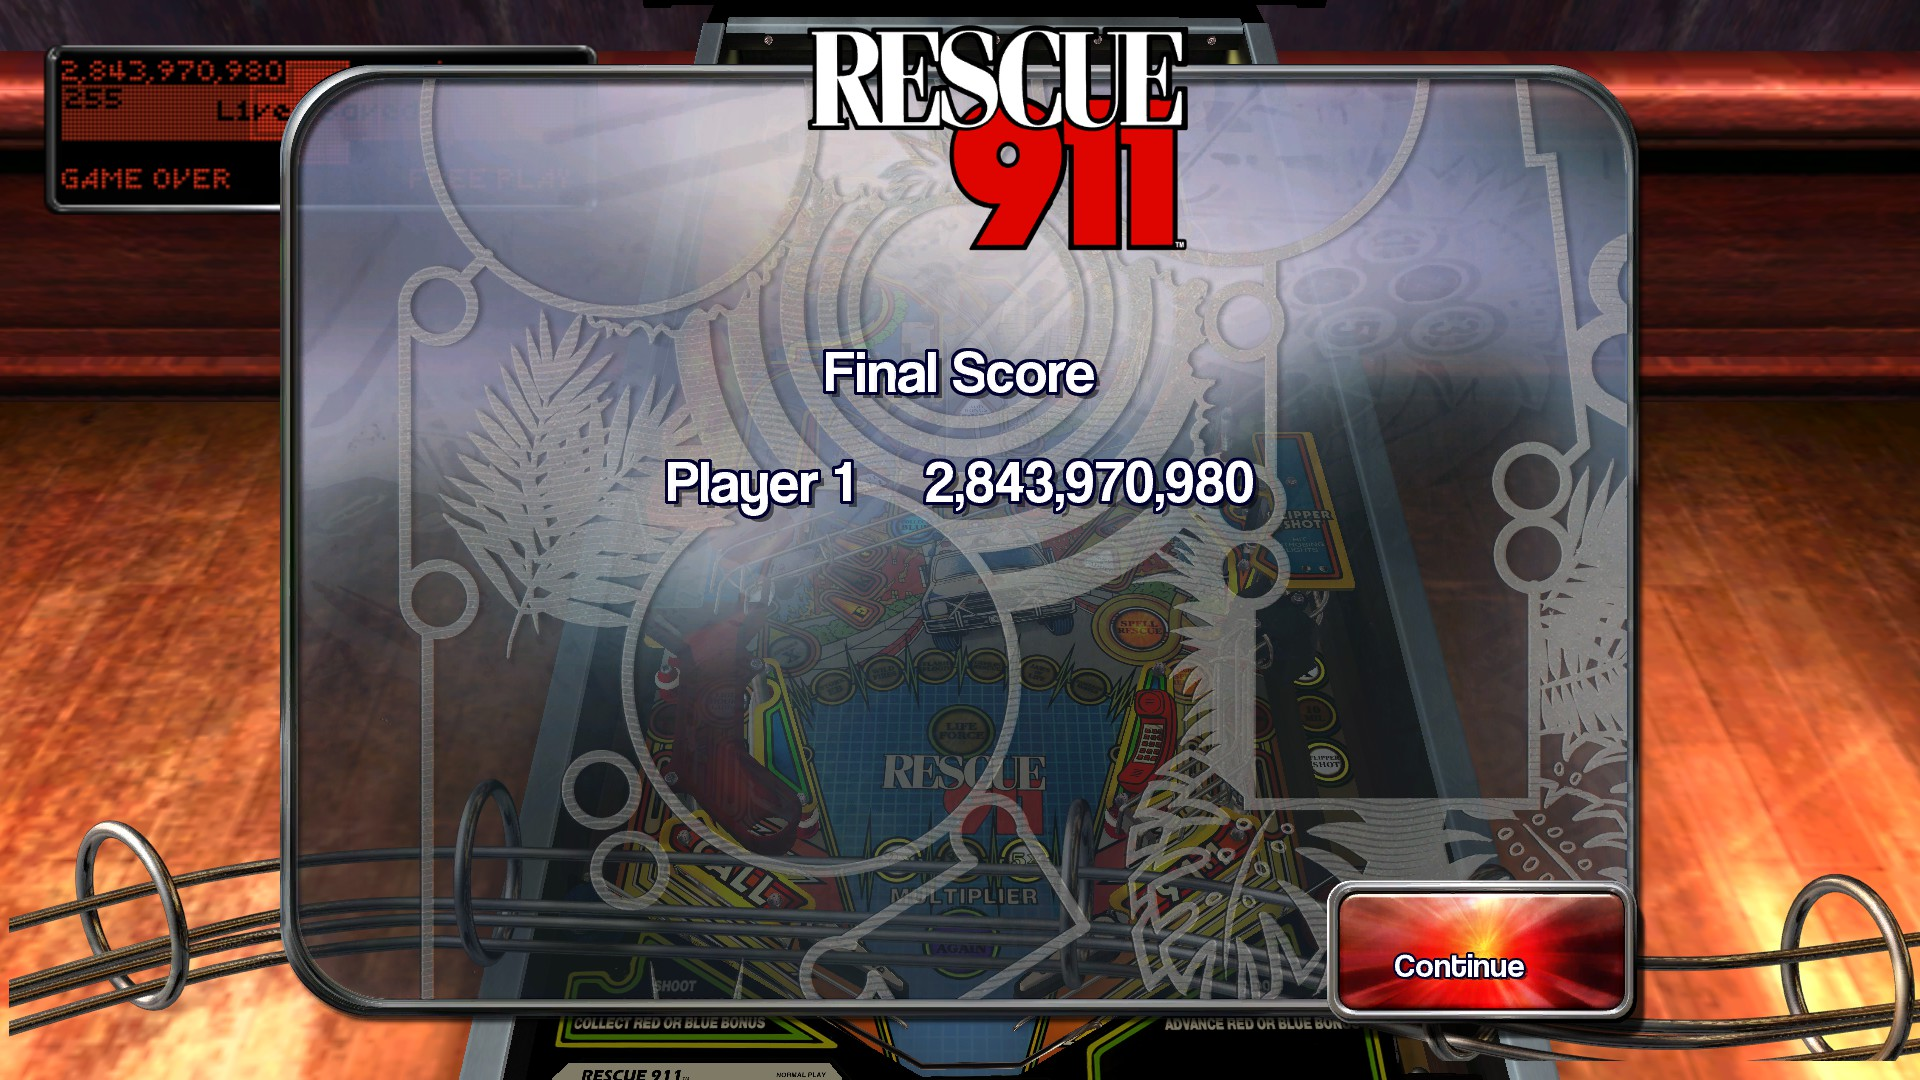 TheTrickster: Pinball Arcade: Rescue 911 (PC) 2,843,970,980 points on 2016-03-27 06:21:28